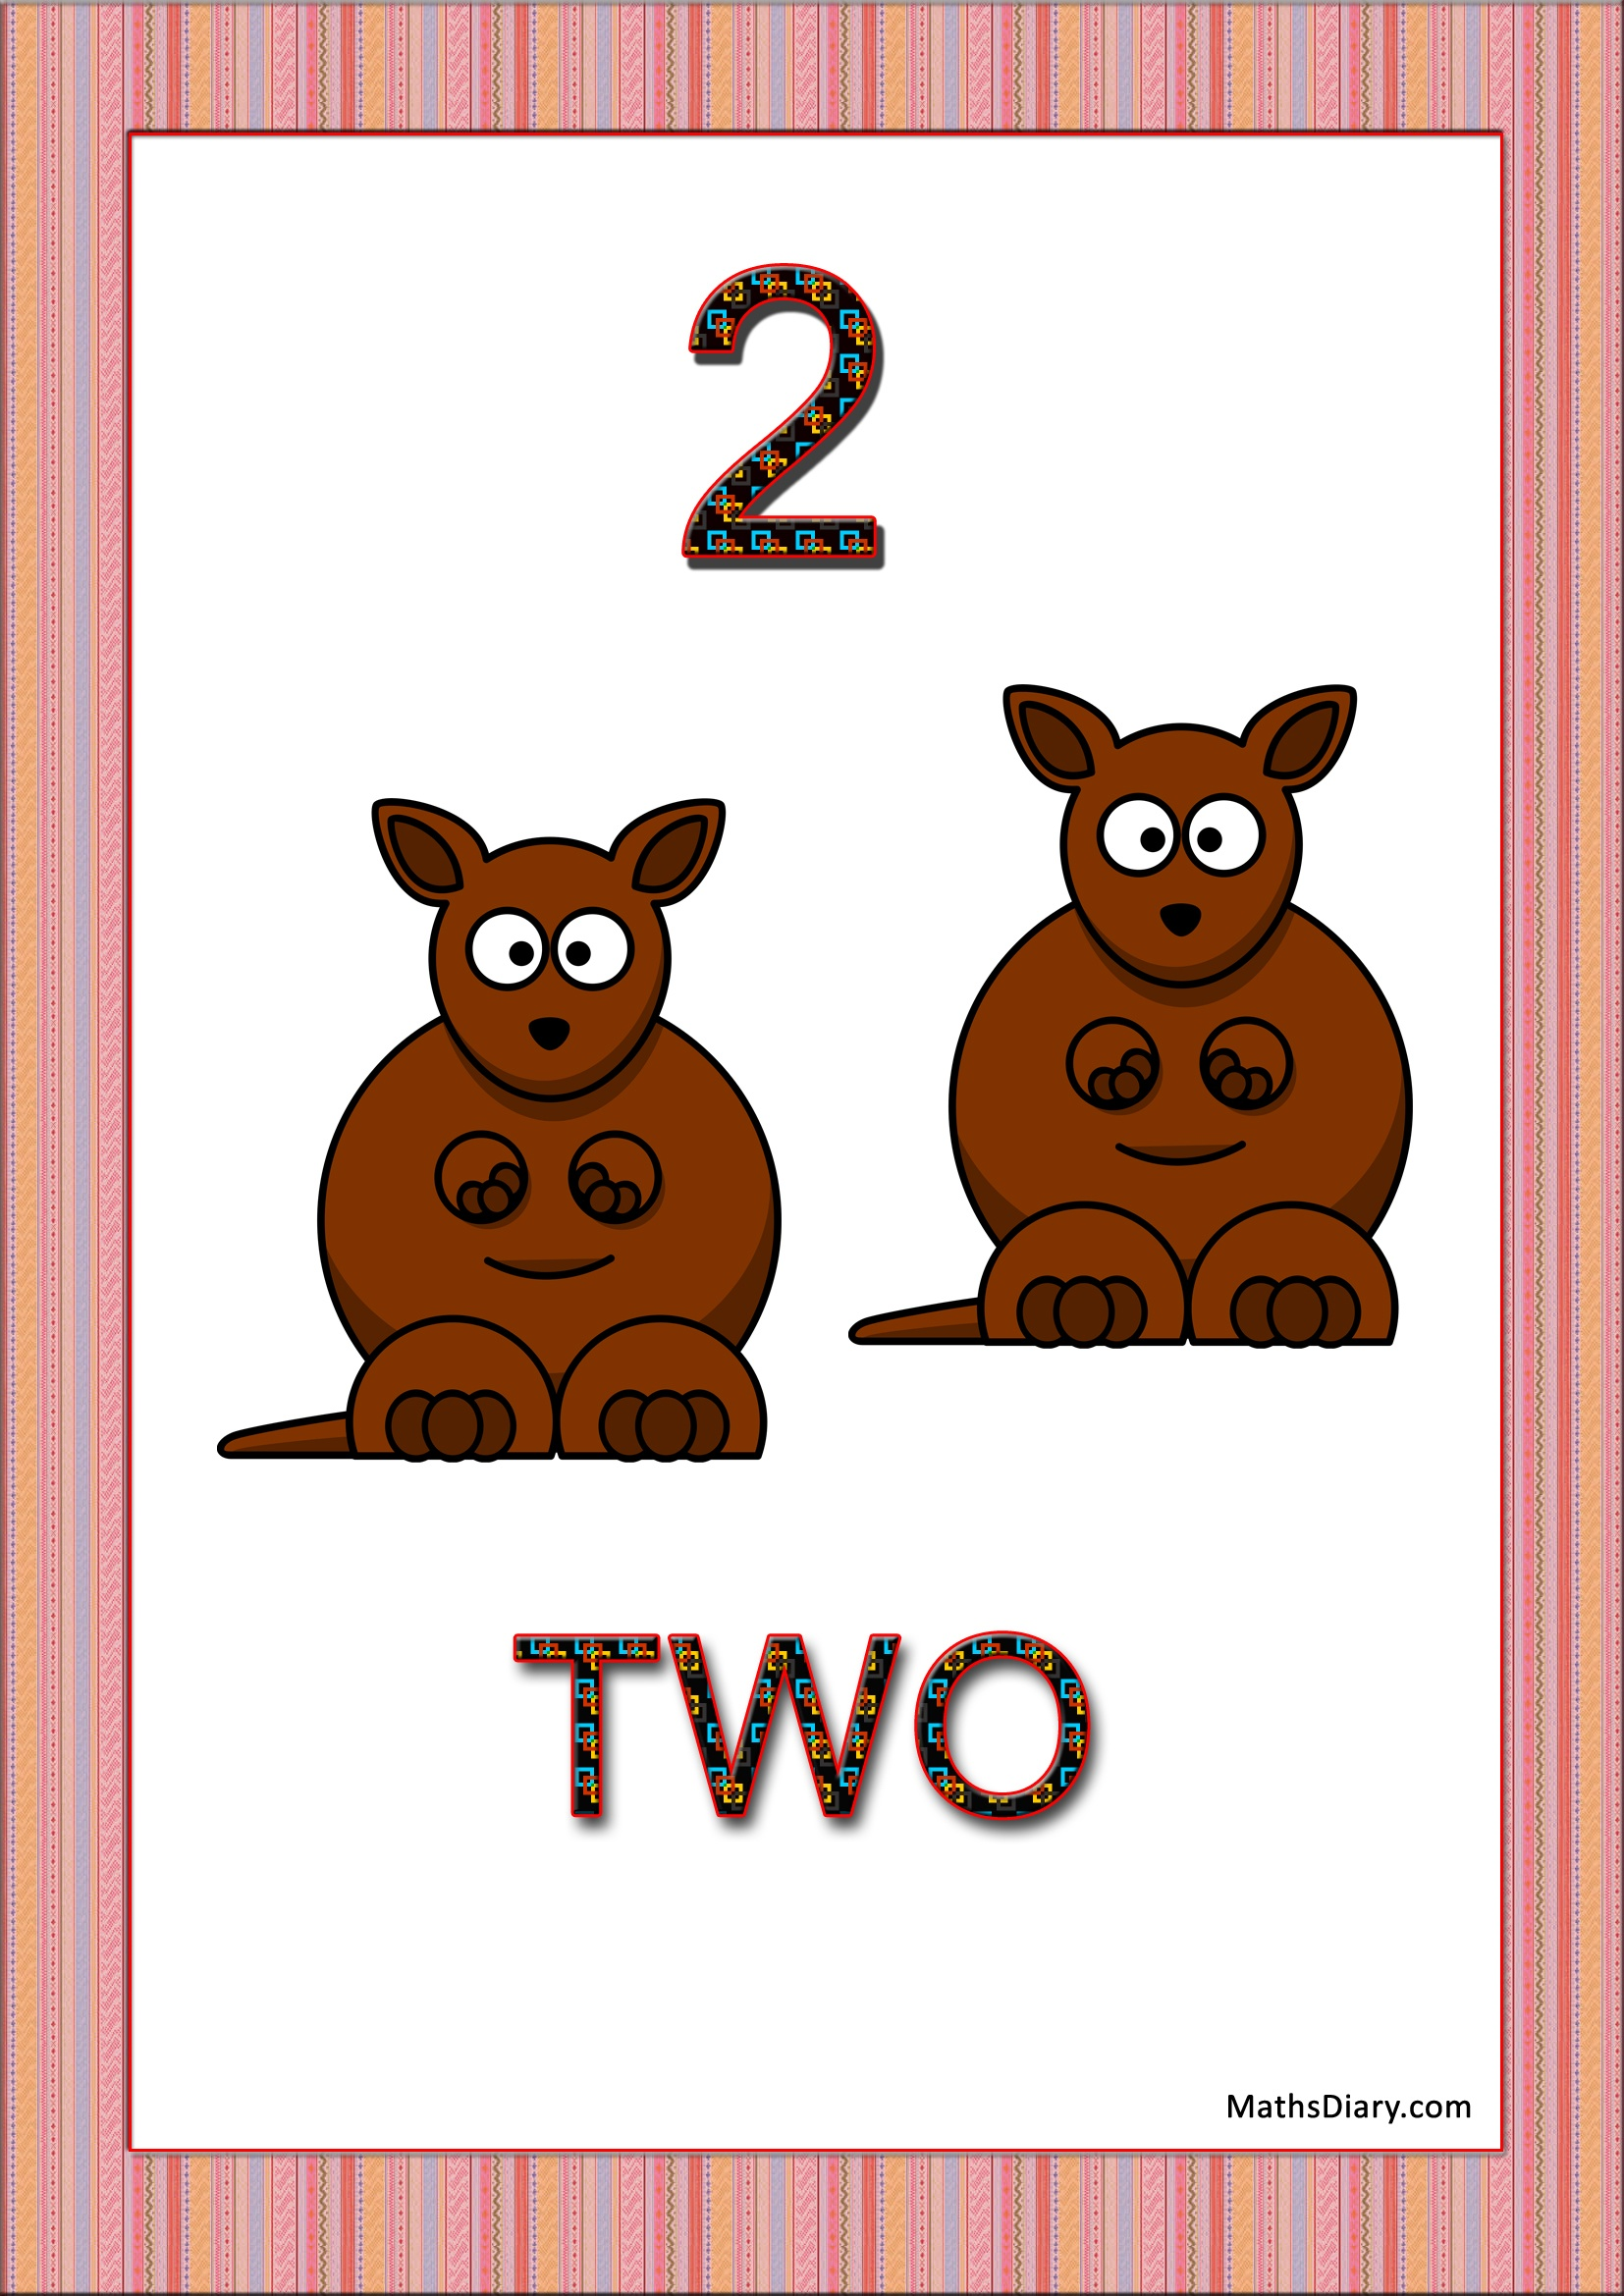 Learning Counting And Recognition Of Number 2 Worksheets Level 1 Help Sheets Part 2